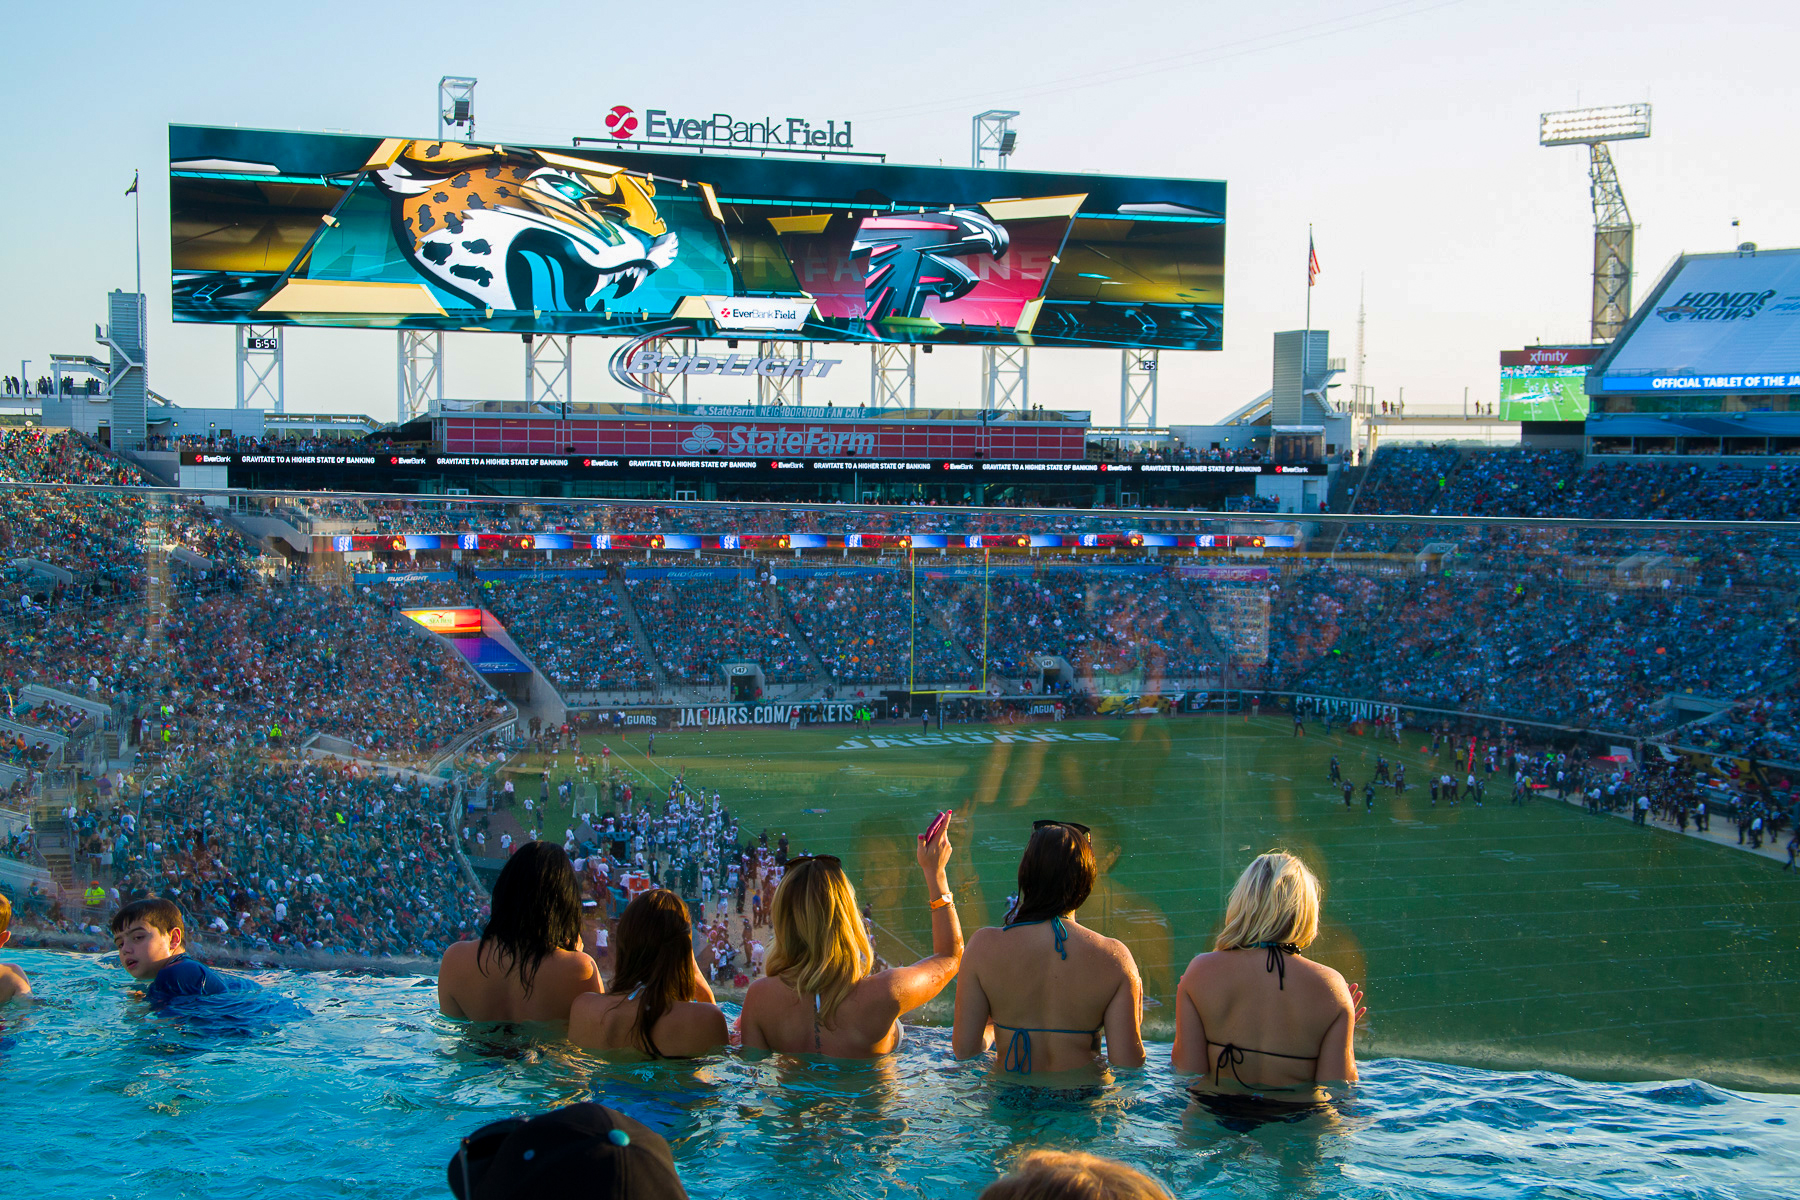 In the pool, everybody: Jacksonville Jaguars fans will get to see their team on home TV this year, even if Everbank Field isn't sold out. (Sports-forum.com)